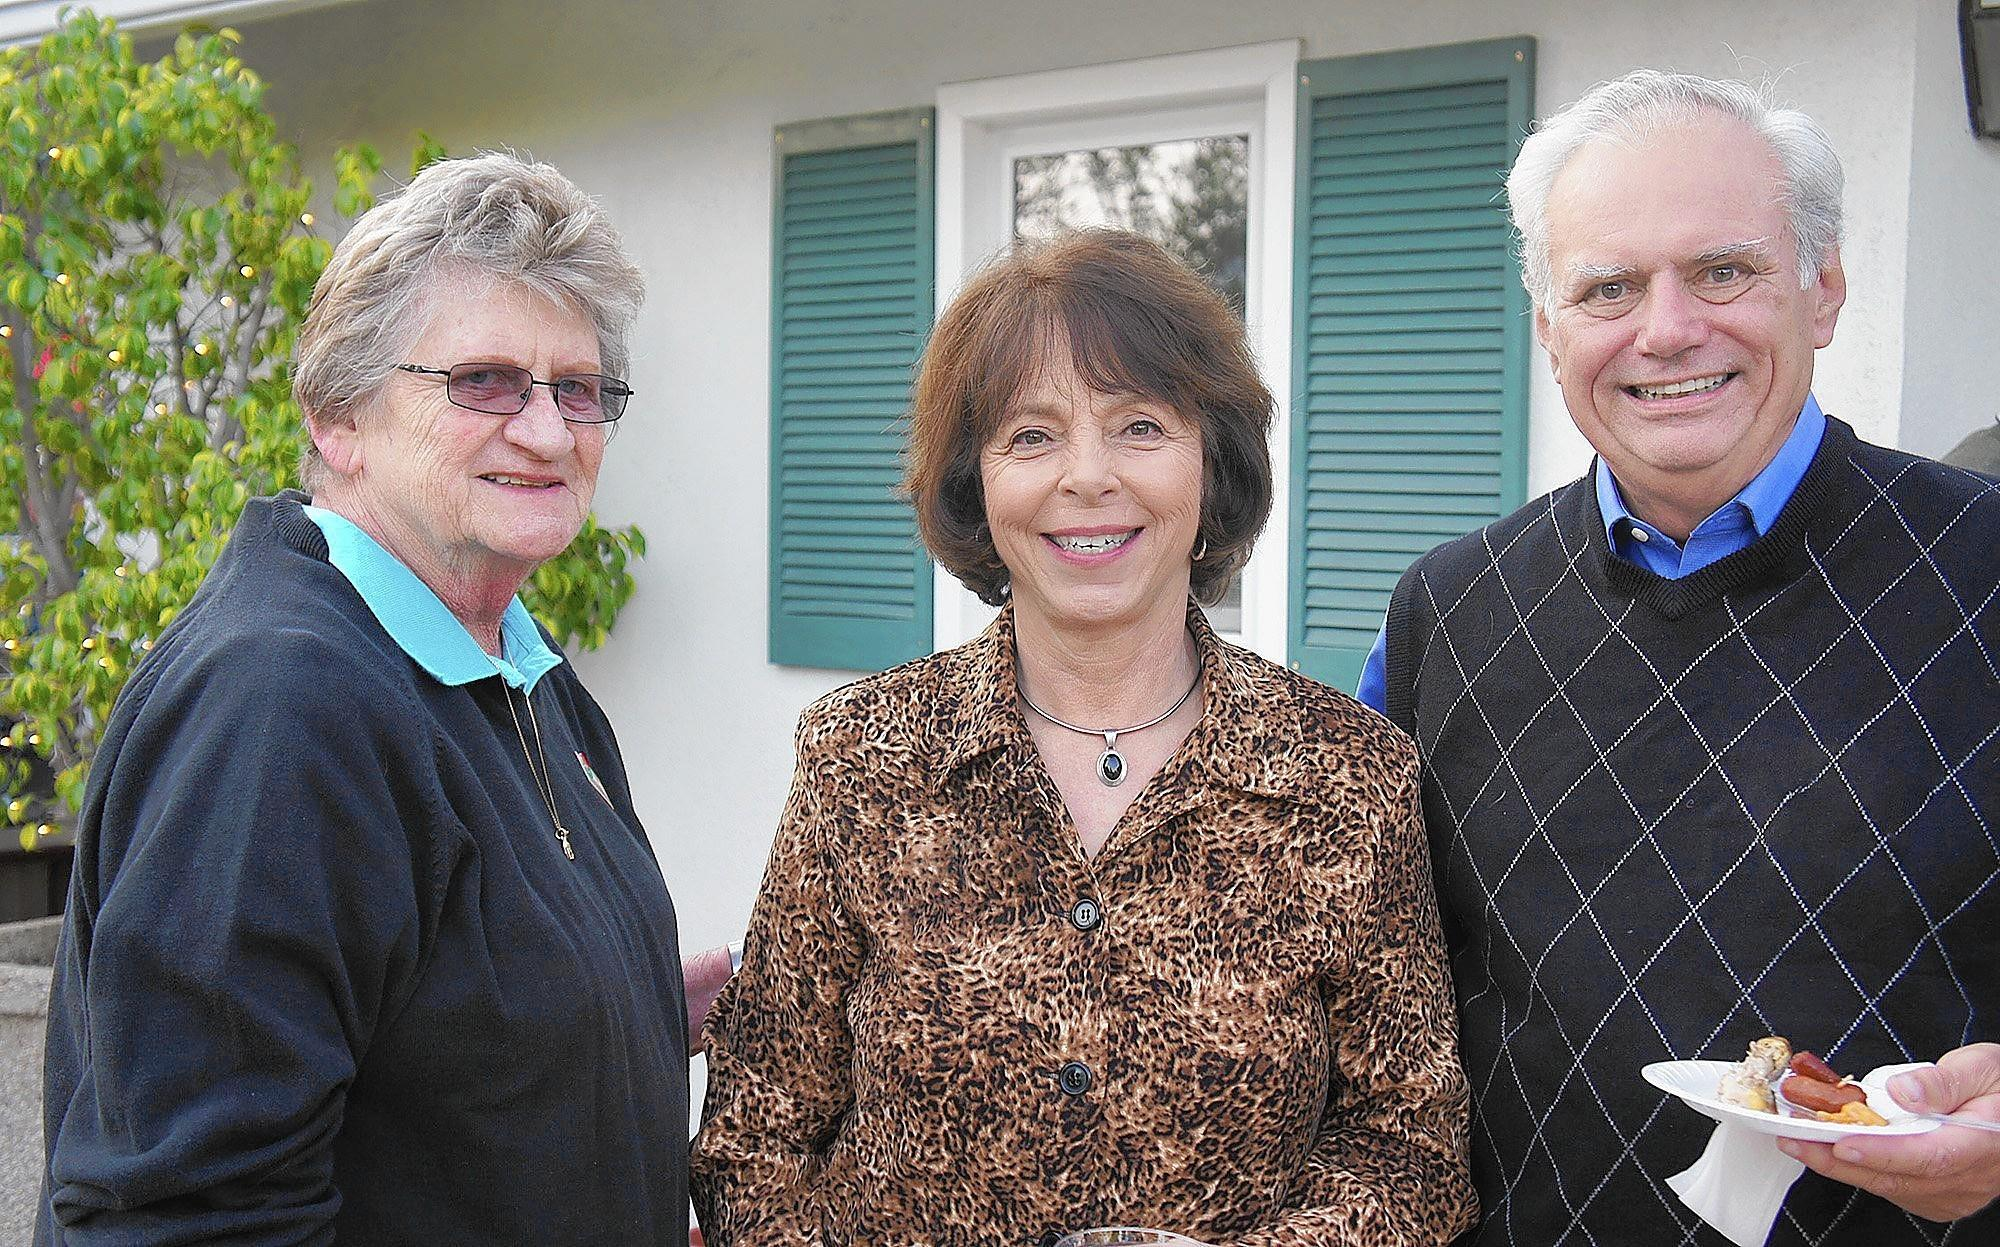 Harriett Hughes, left, catches up with Martha and Tom Burns at the Happy Hour held in support of La Cañada's float in next January's Rose Parade.